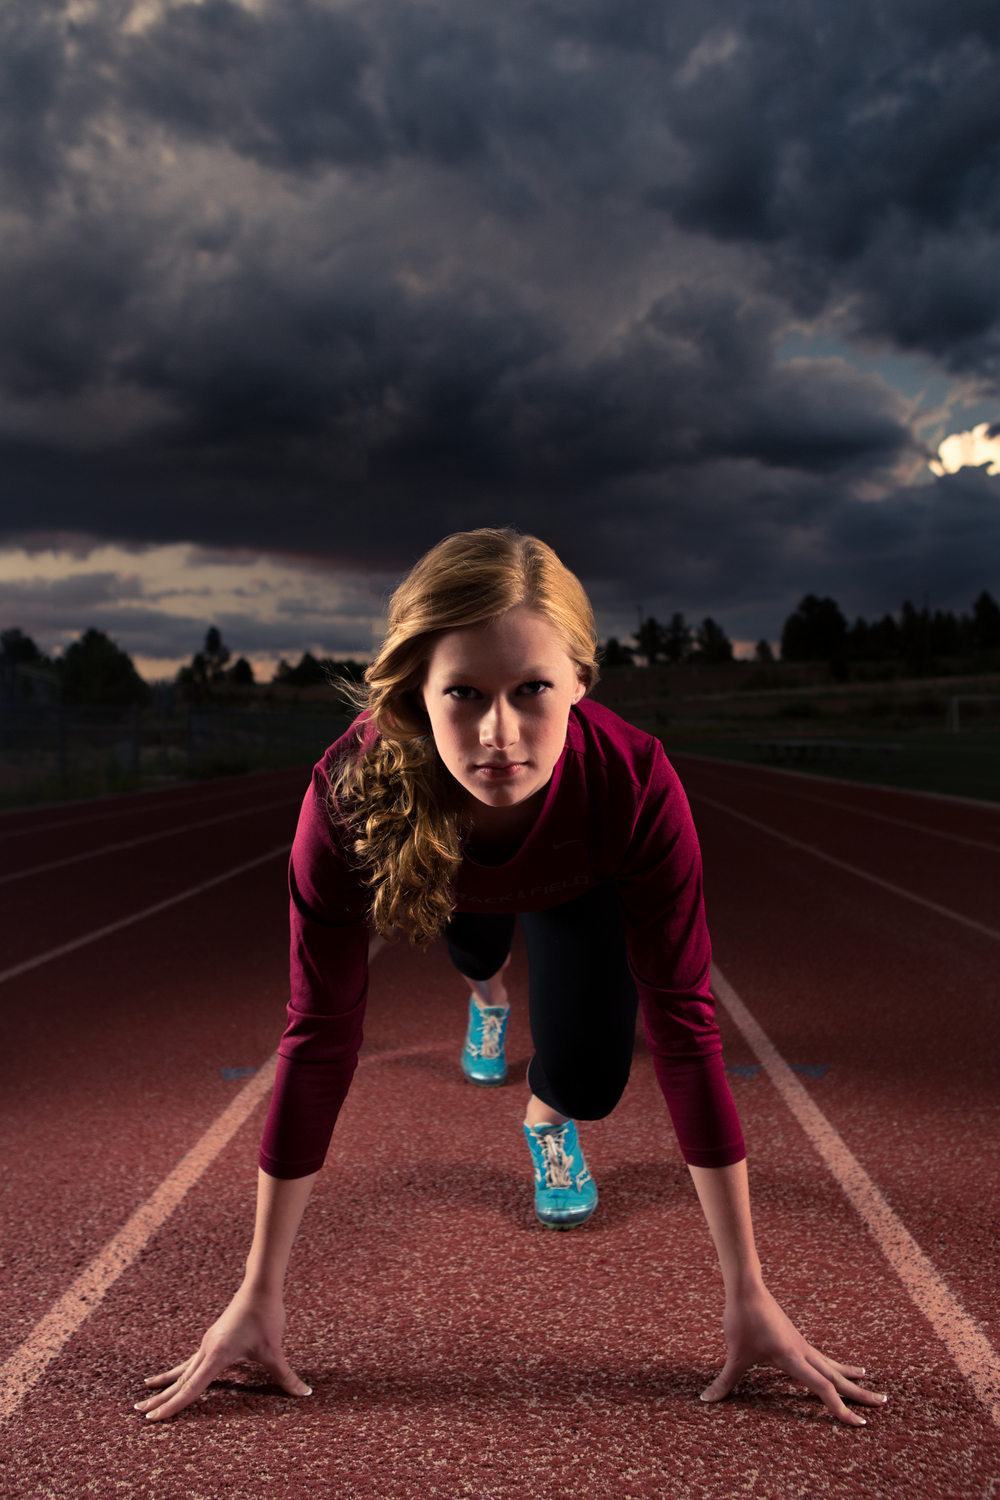 brianne track and field senior portrait nike poster